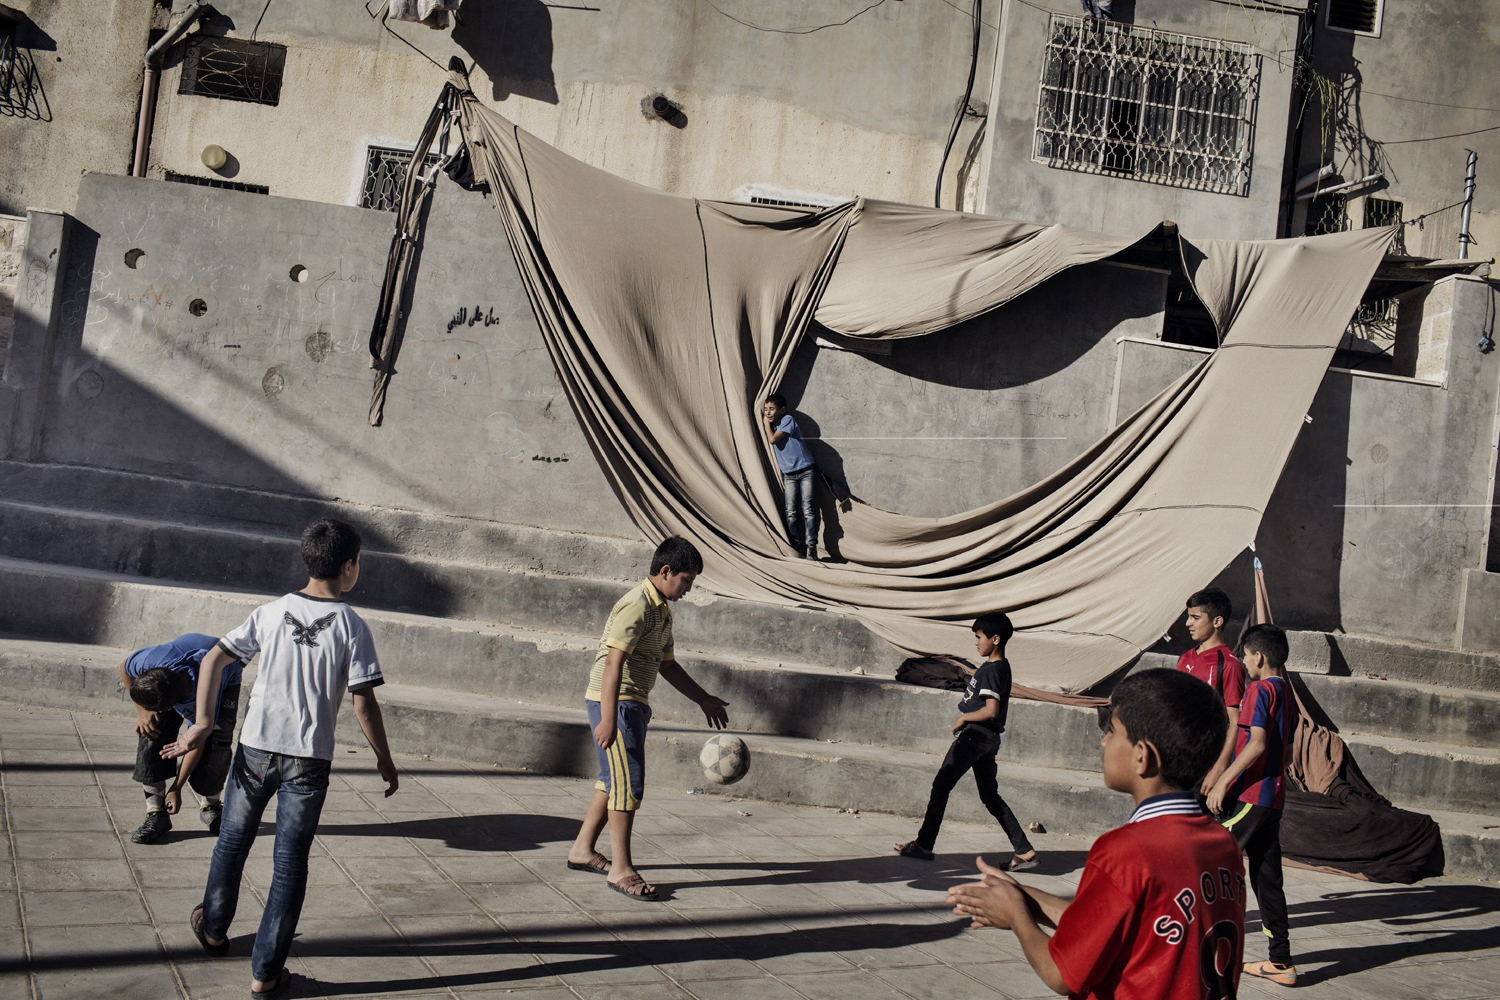 Children play soccer in a plaza in Al Fawwar, a Palestinian refugee camp in the West Bank, June 15, 2014.